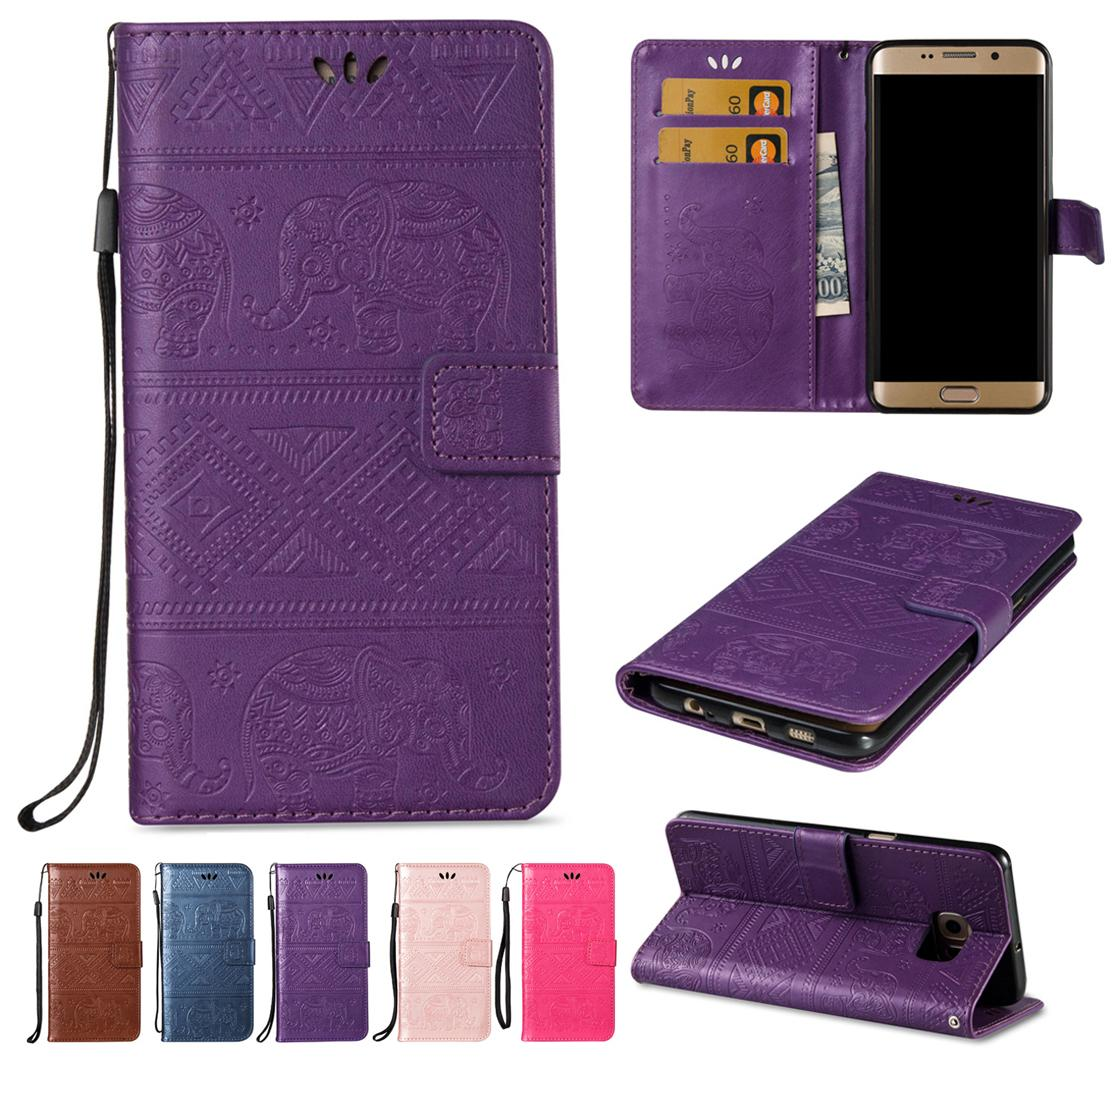 hard wallet cases for samsung galaxy s6 edge plus edge pu leatherhard wallet cases for samsung galaxy s6 edge plus edge pu leather cover with flip buckle id card holder empaistic national elephant strap customized phone